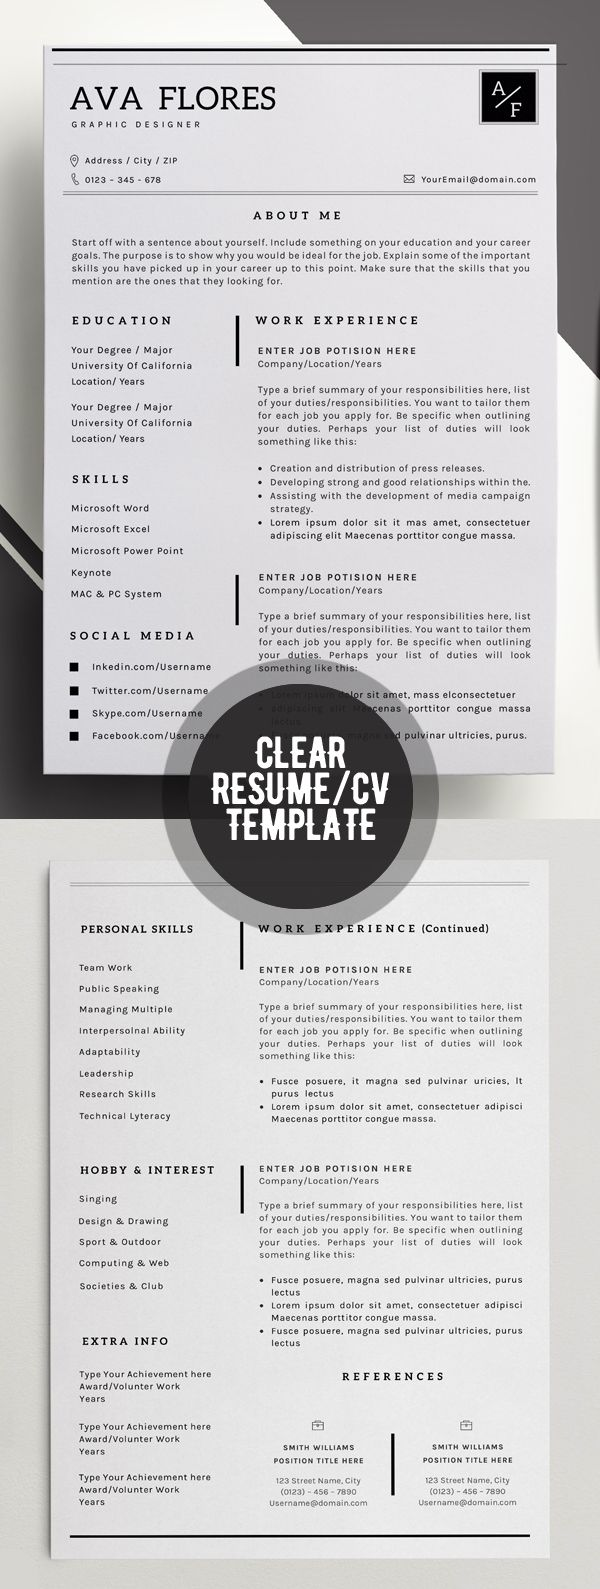 clear professional resume personal profile contact info social media accounts skills expertise experience achievements